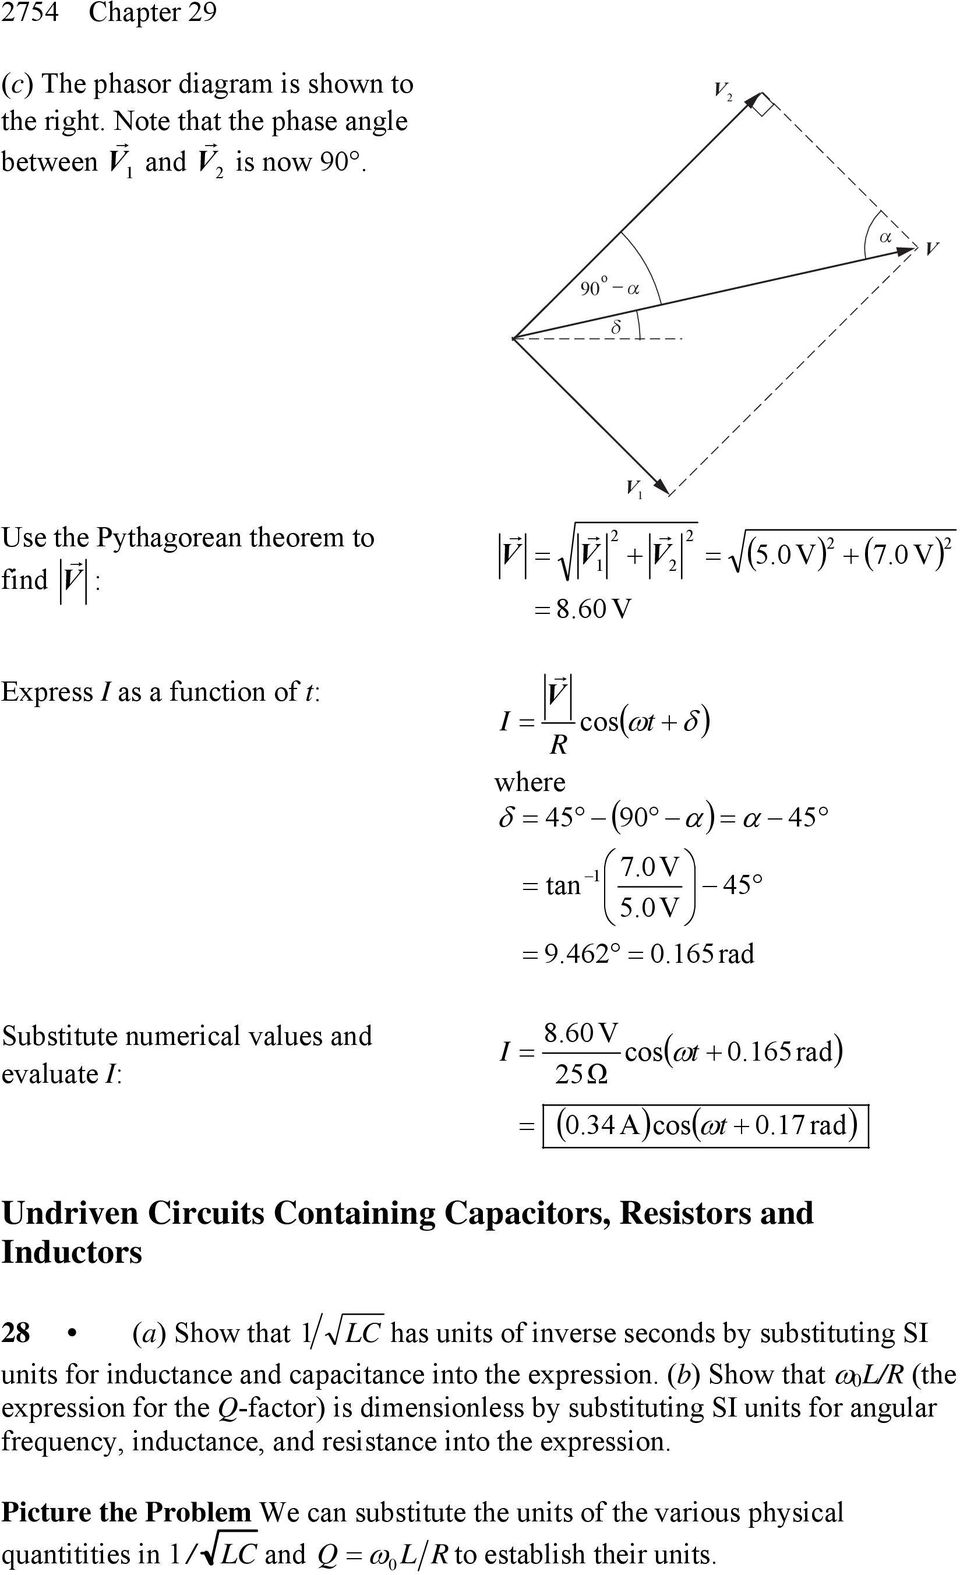 Chapter 29 Alternating Current Circuits Pdf Inductors In Ac Inductive Reactive And Phasor Diagrams 7 Rad Undriven Ircuits Ontaining Apacitors Esistors Nductors 8 A Show